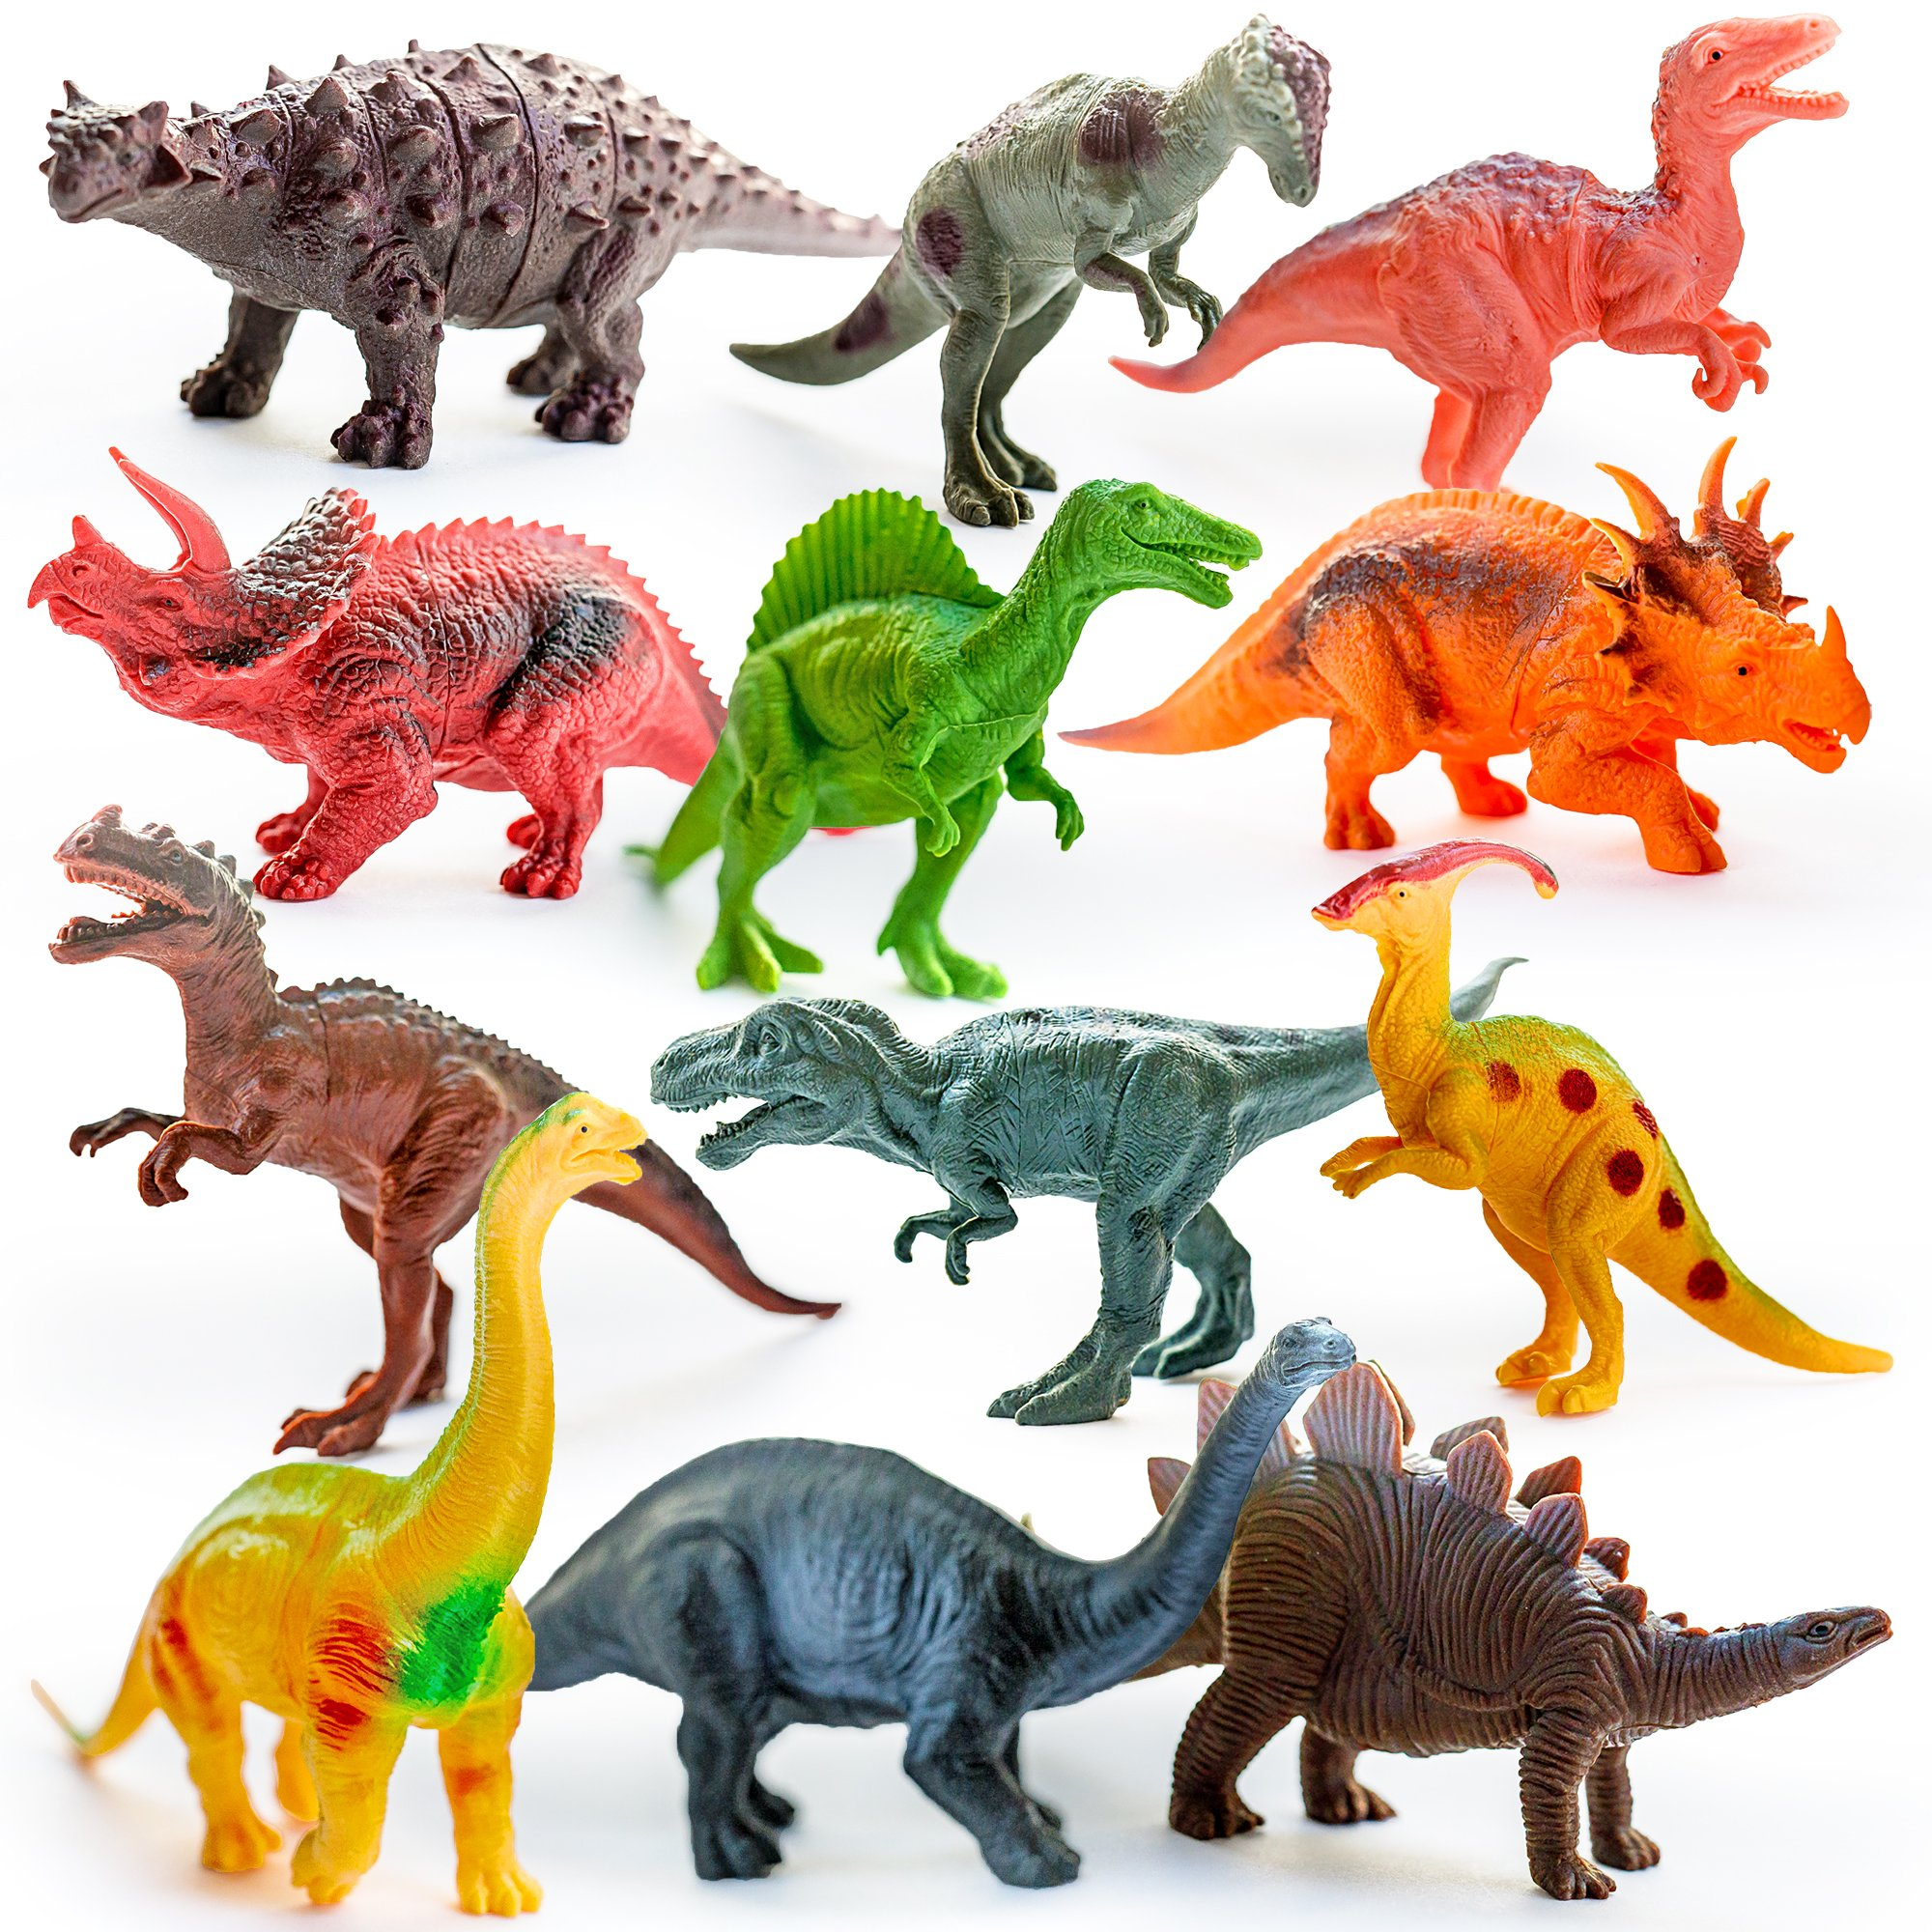 EDUCATIONAL Dinosaurs Action Figures For Kids Plastic Toys Set